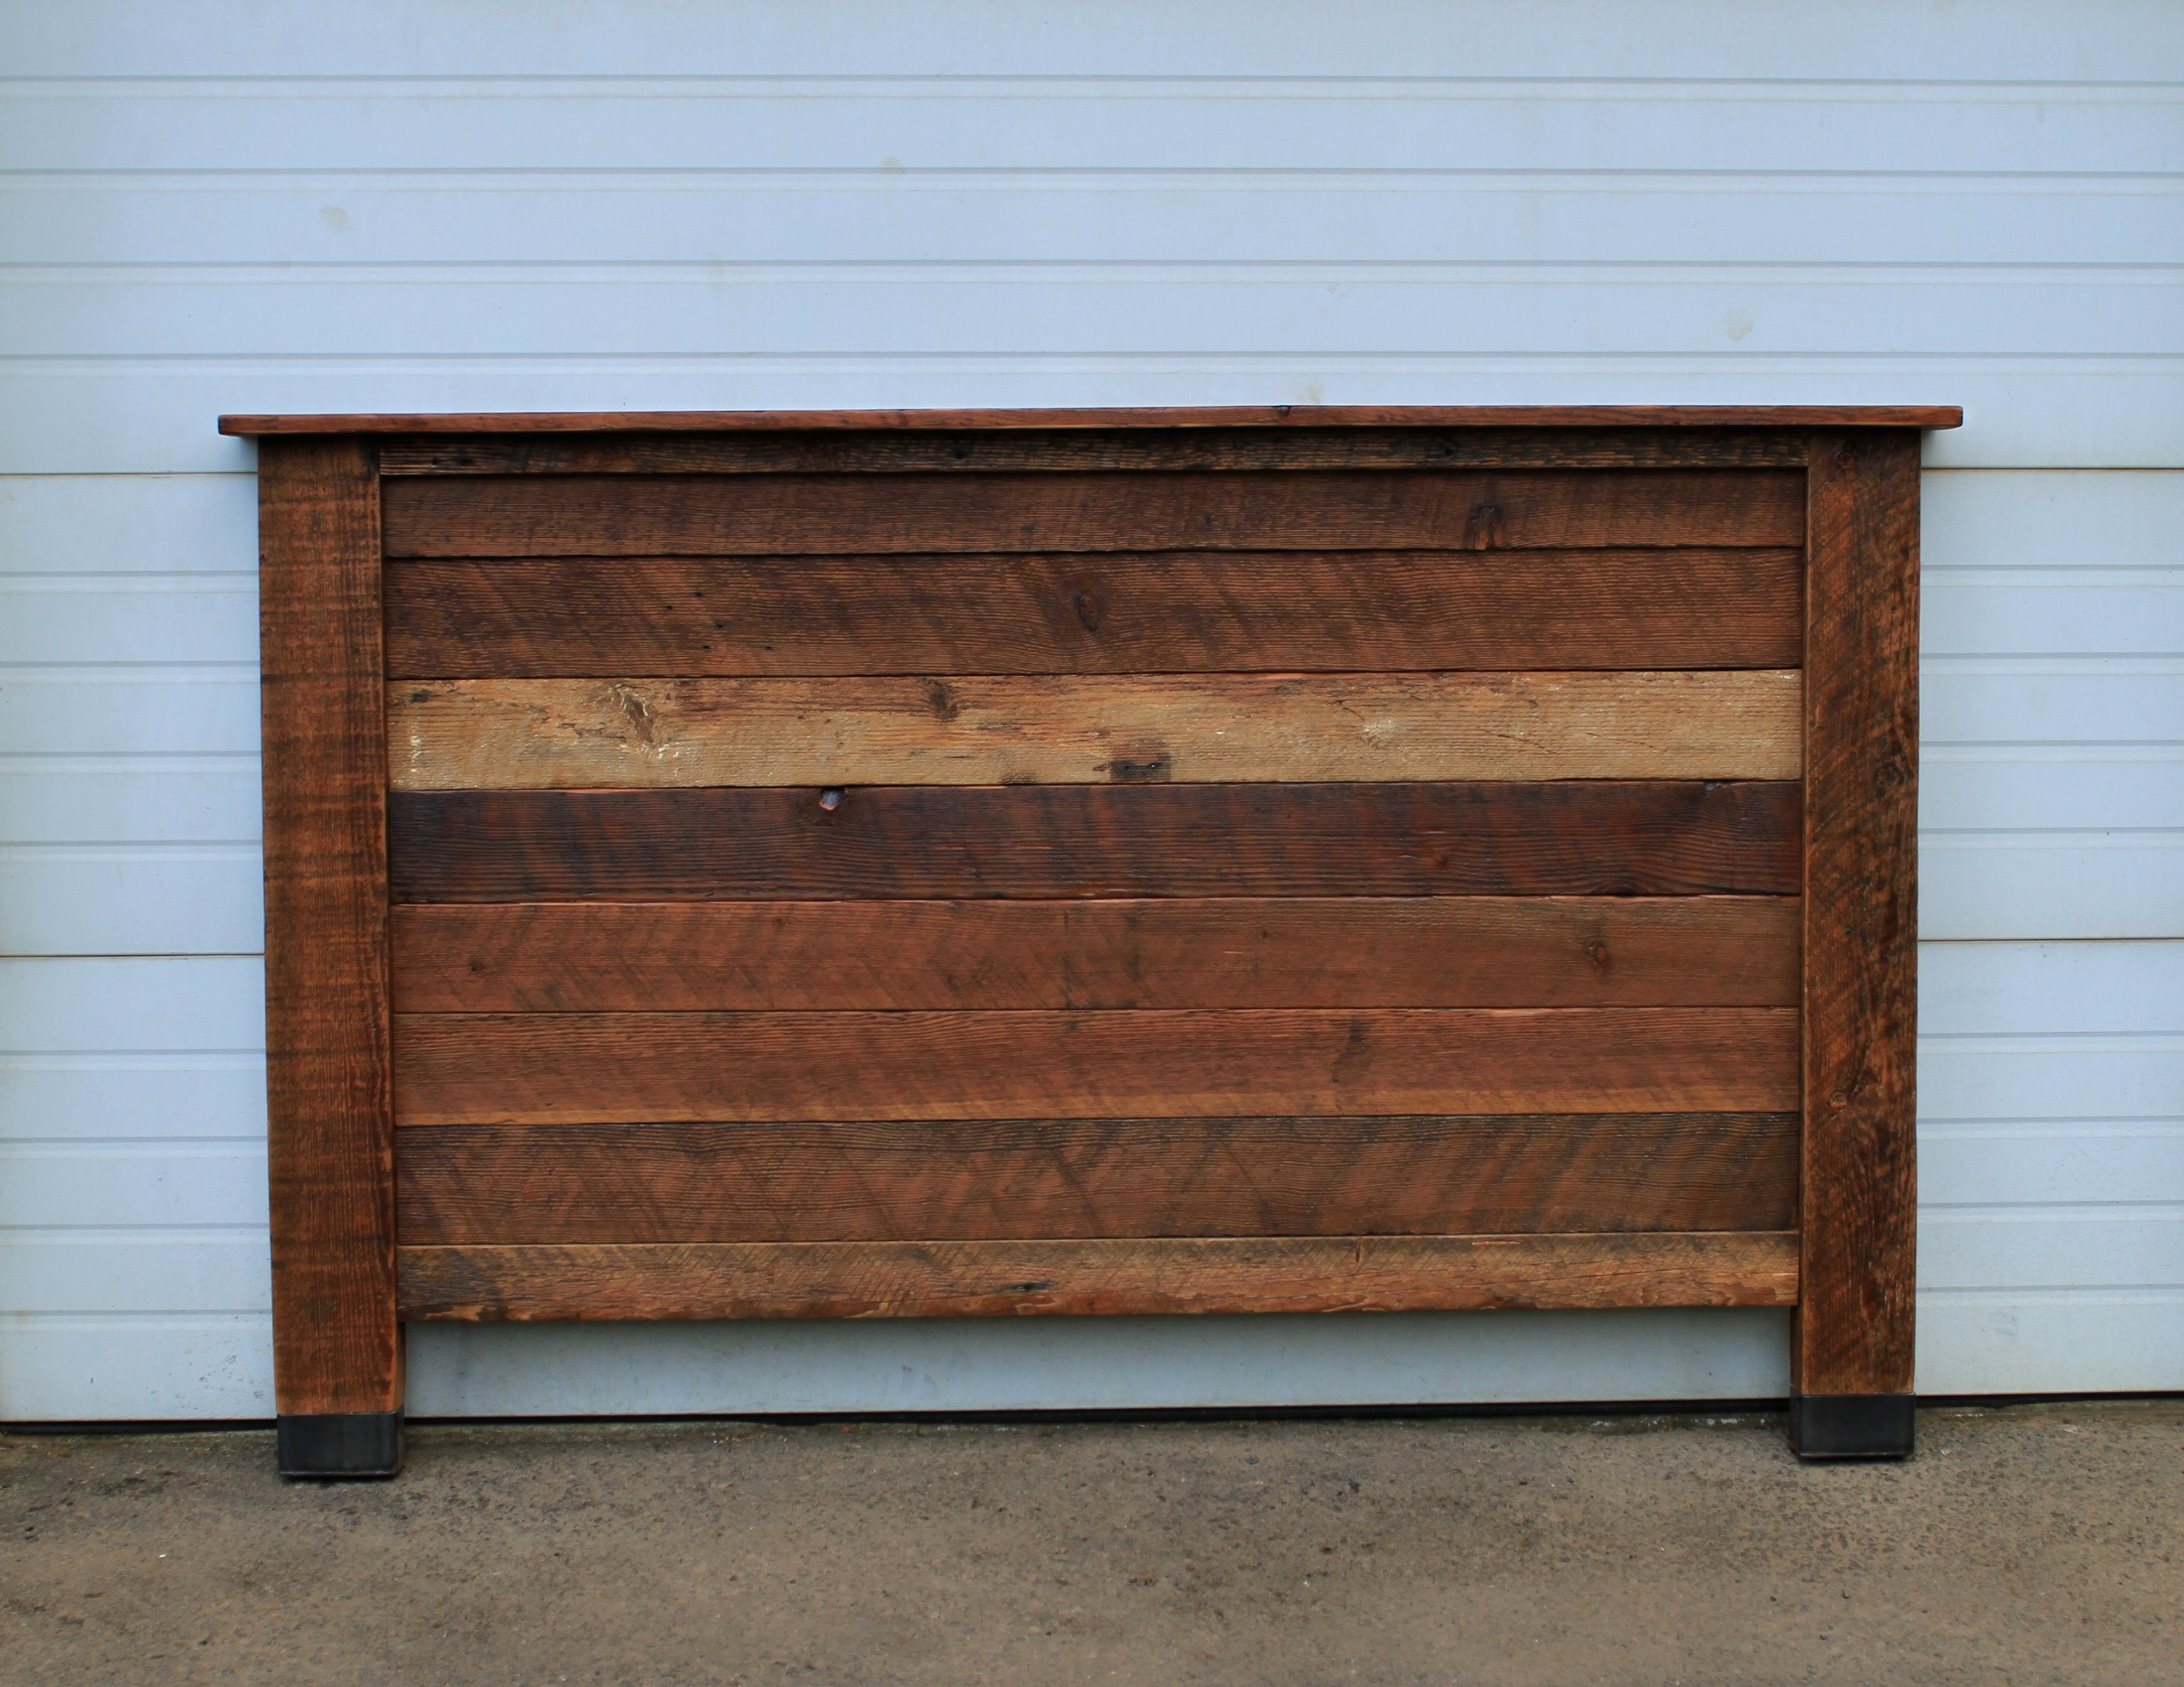 Barn Wood Headboards, Starting at $550